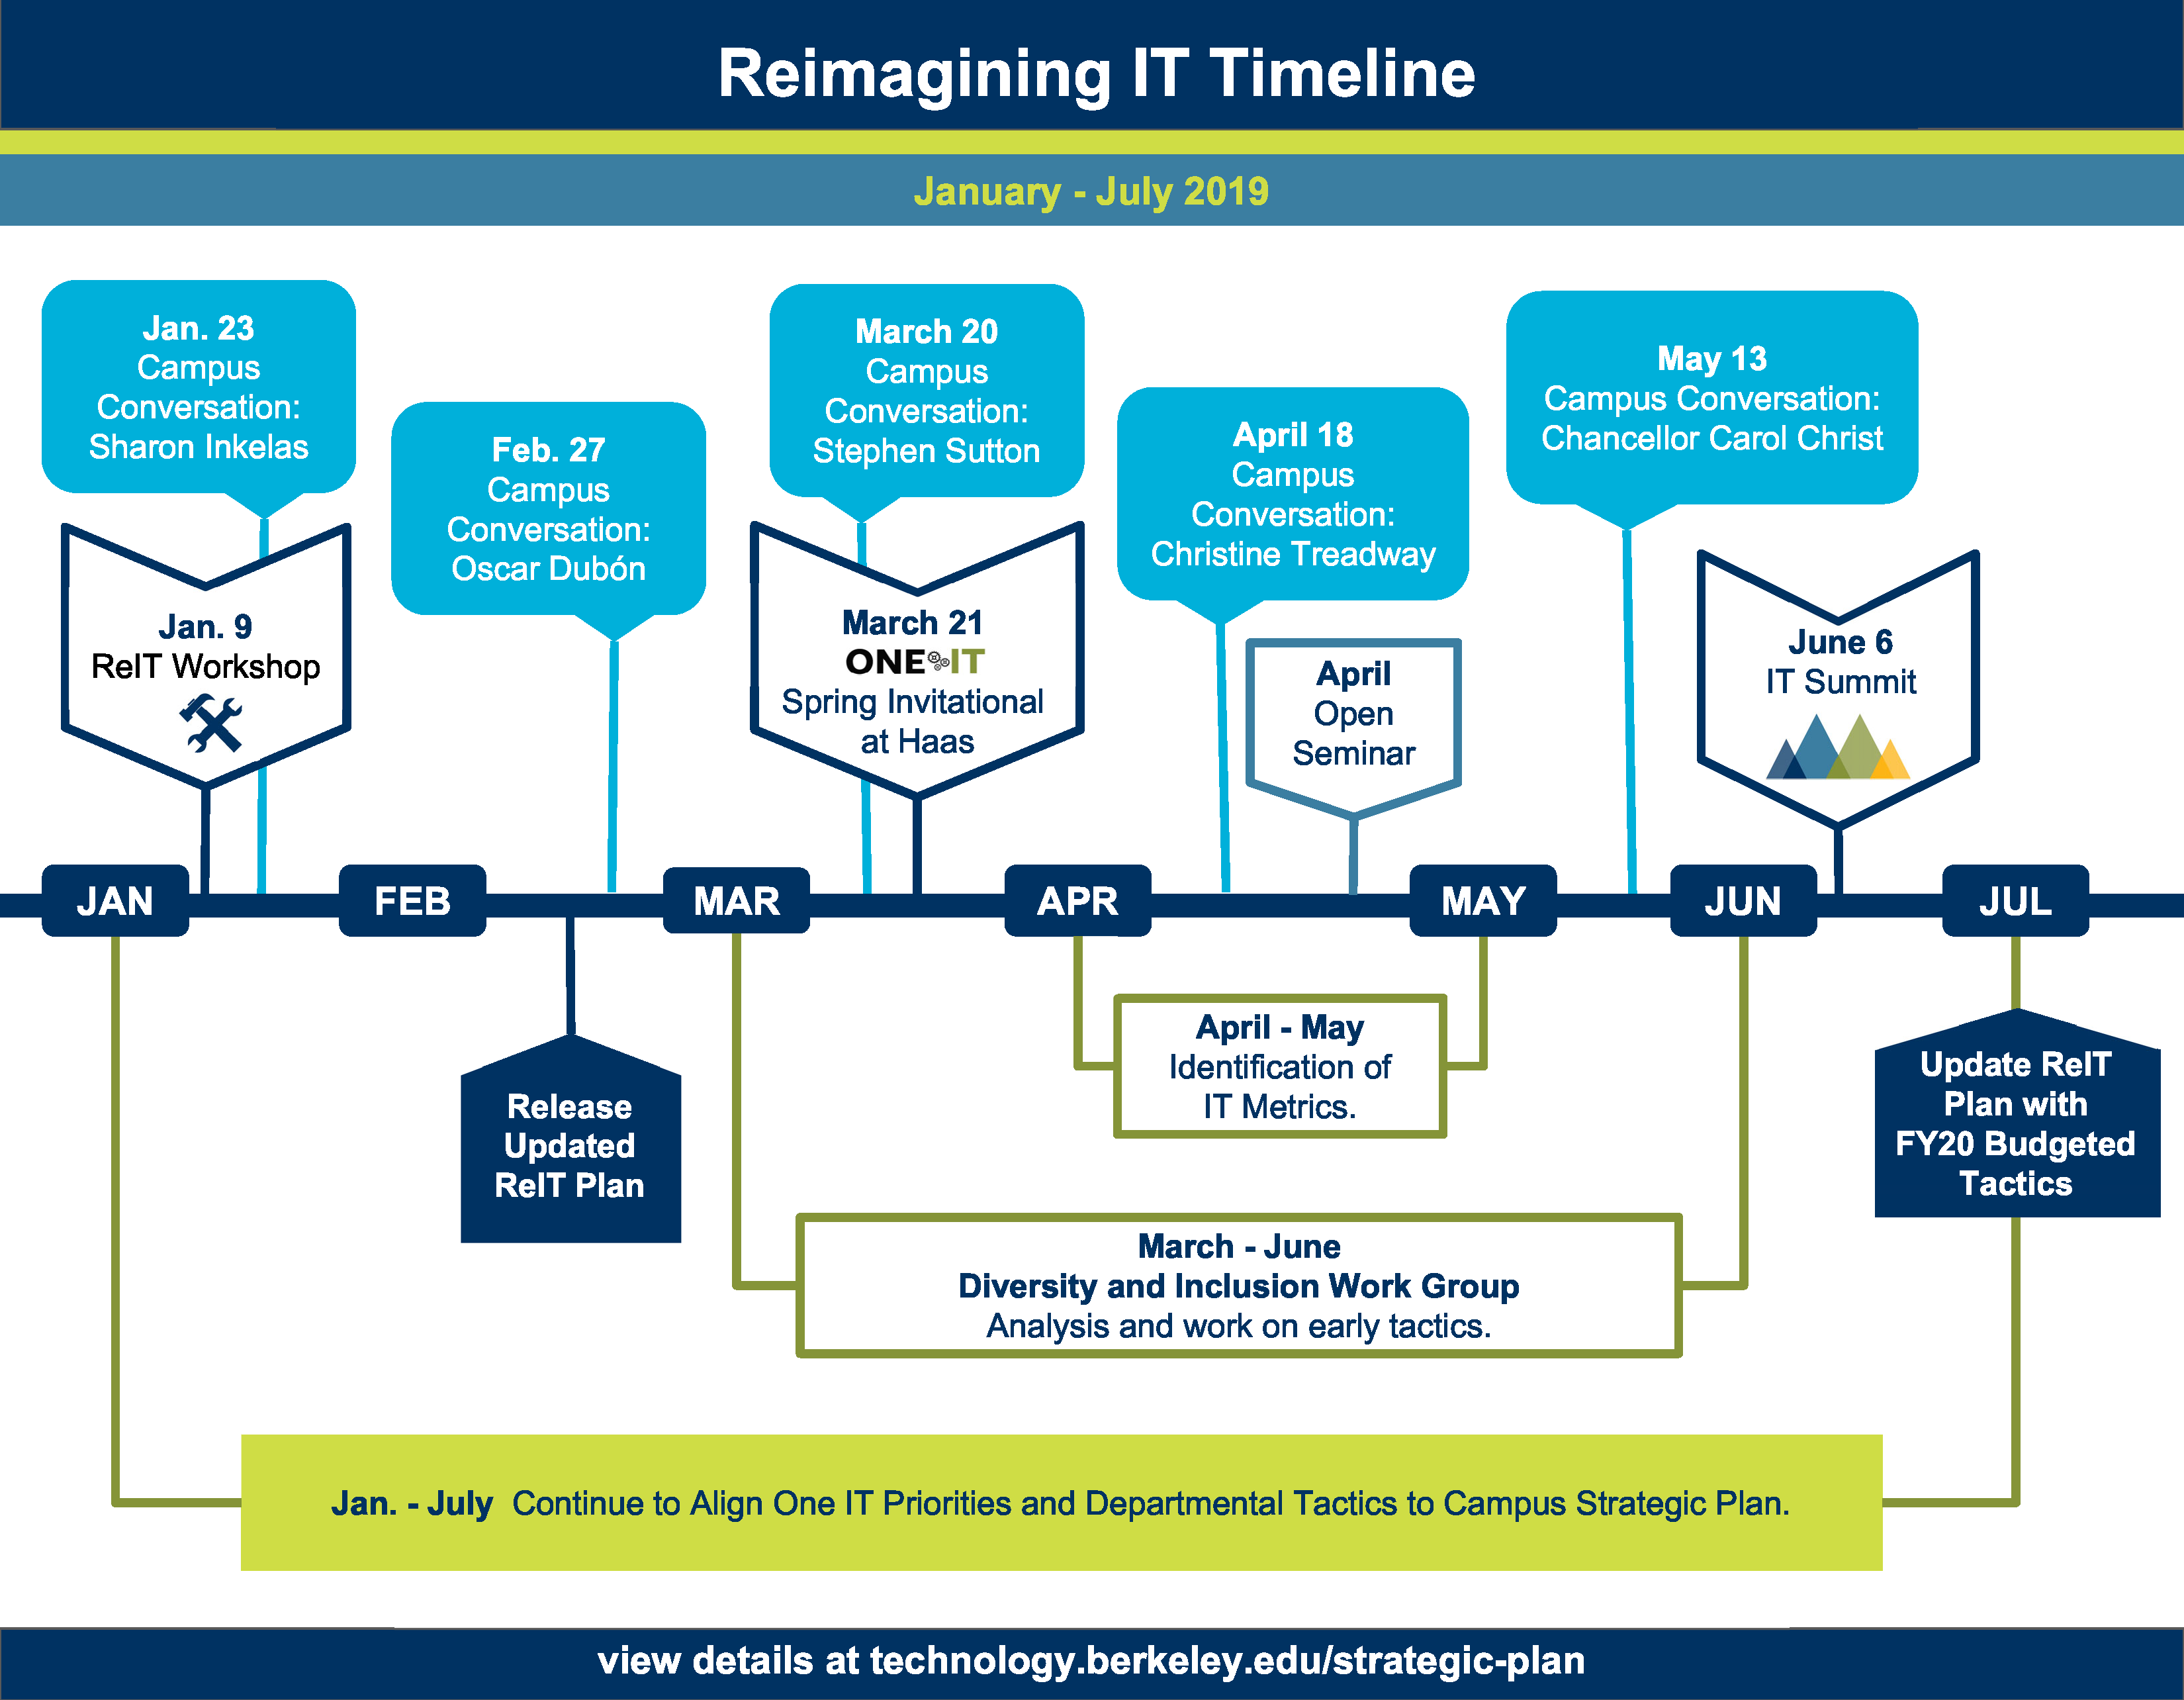 ReIT Timeline Jan to July 2019